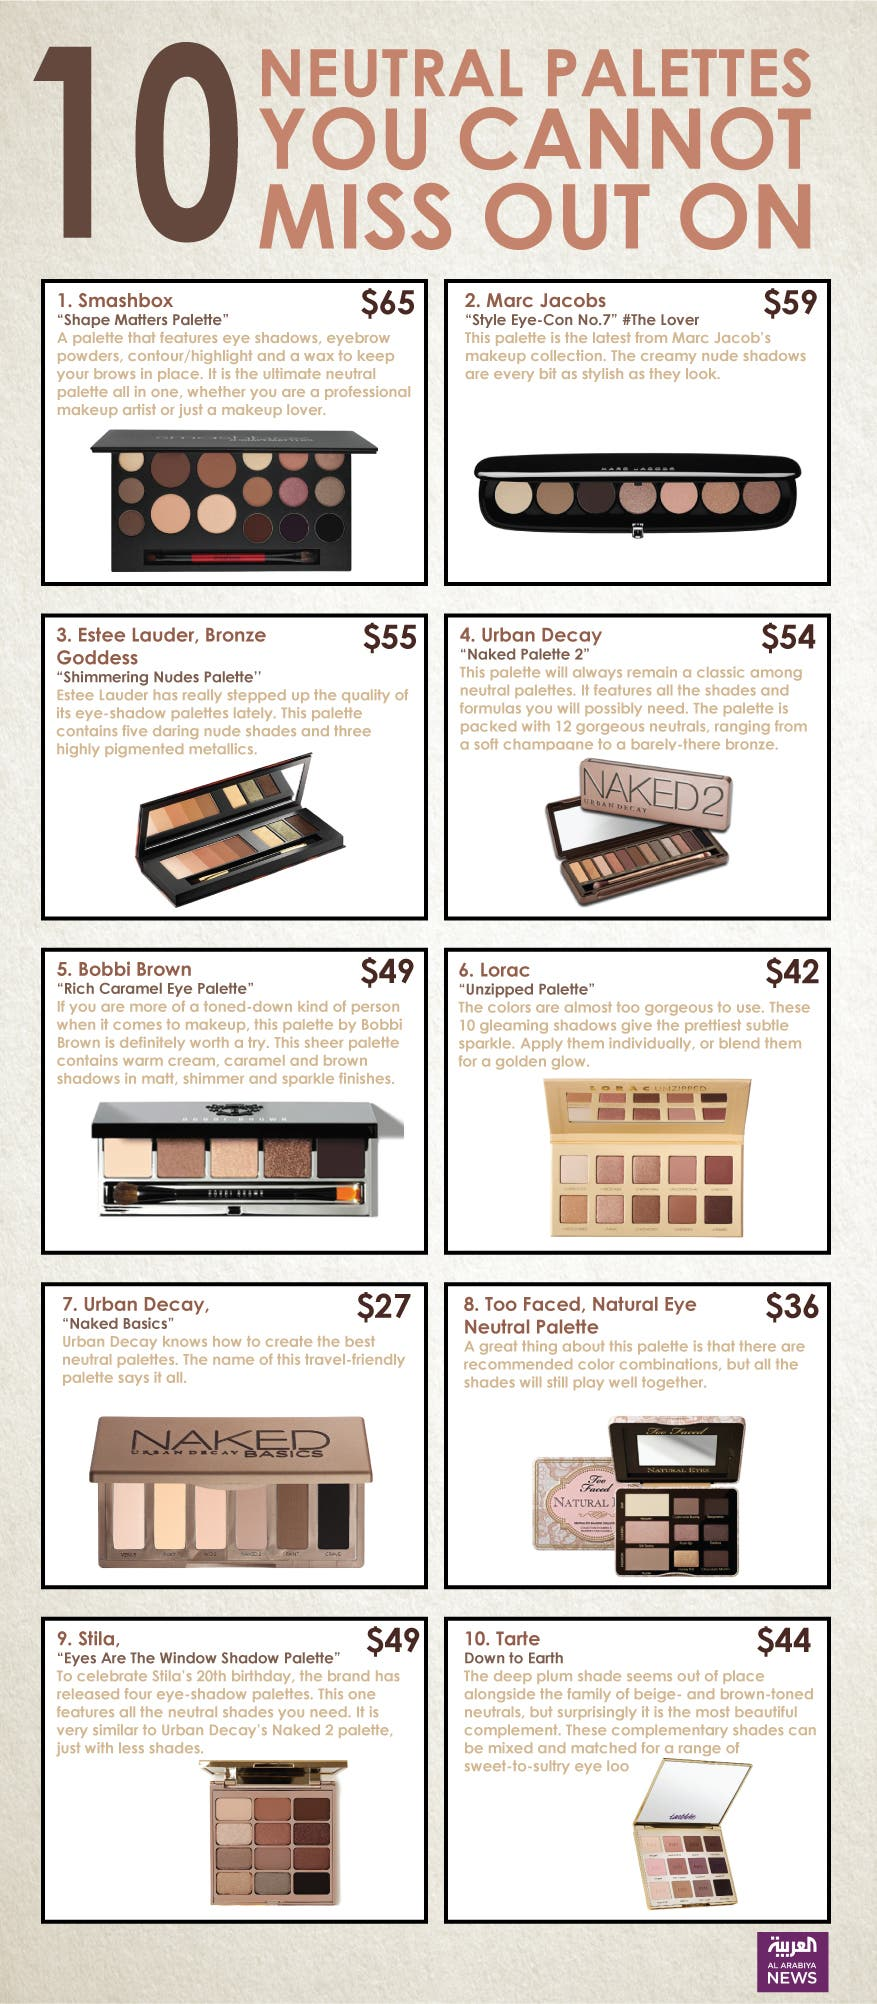 Infographic: 10 neutral palettes you cannot miss out on